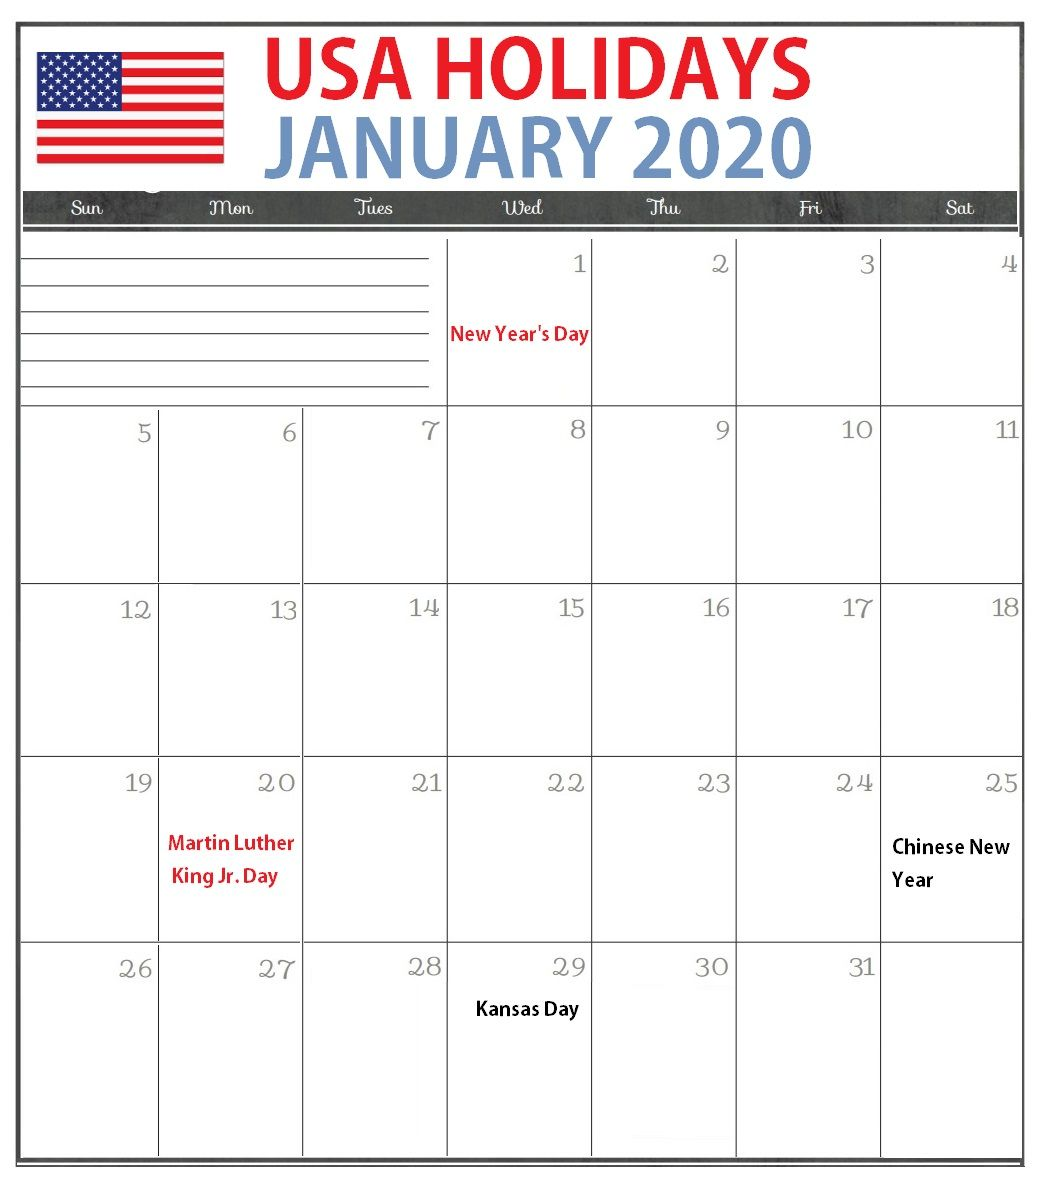 January 2020 Calendar Usa Holidays Federal National Bank